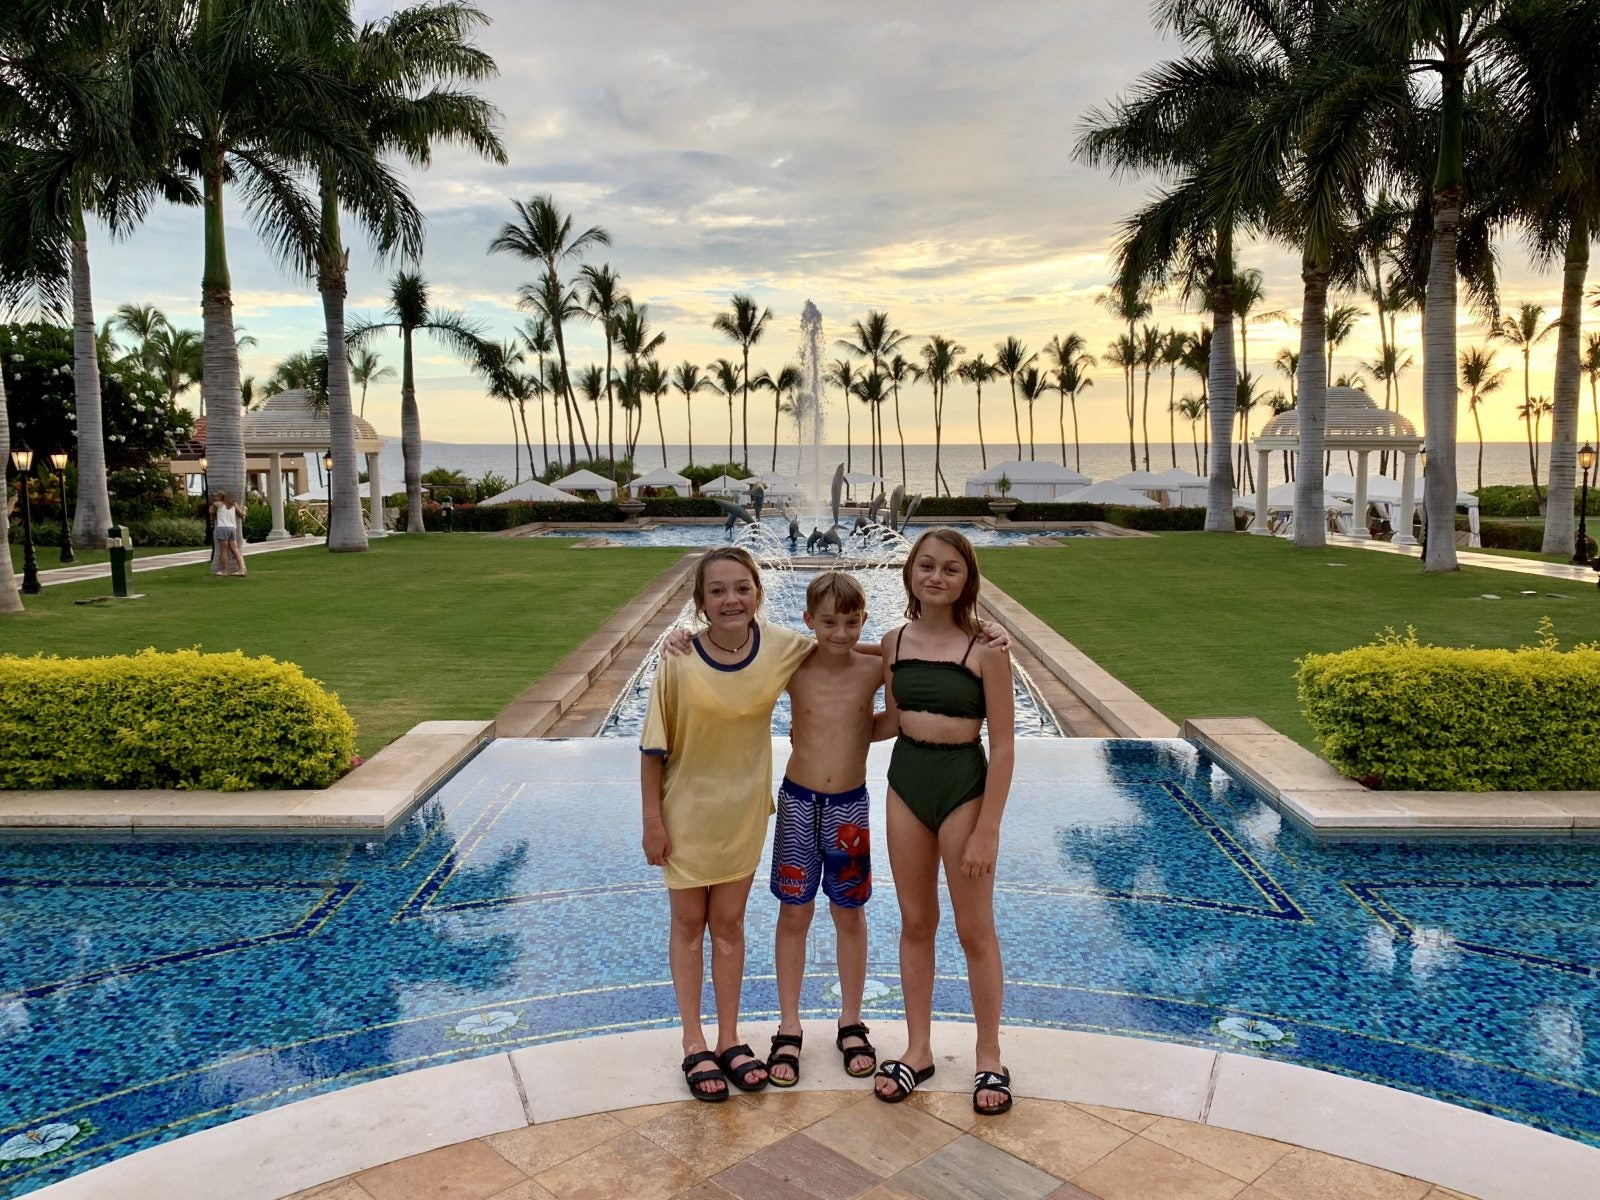 Hilton Surpass Review: Earn 130,000 Hilton Points, a Weekend Night and Automatic Elite Status (Limited-Time Offer Through August 28, 2019)